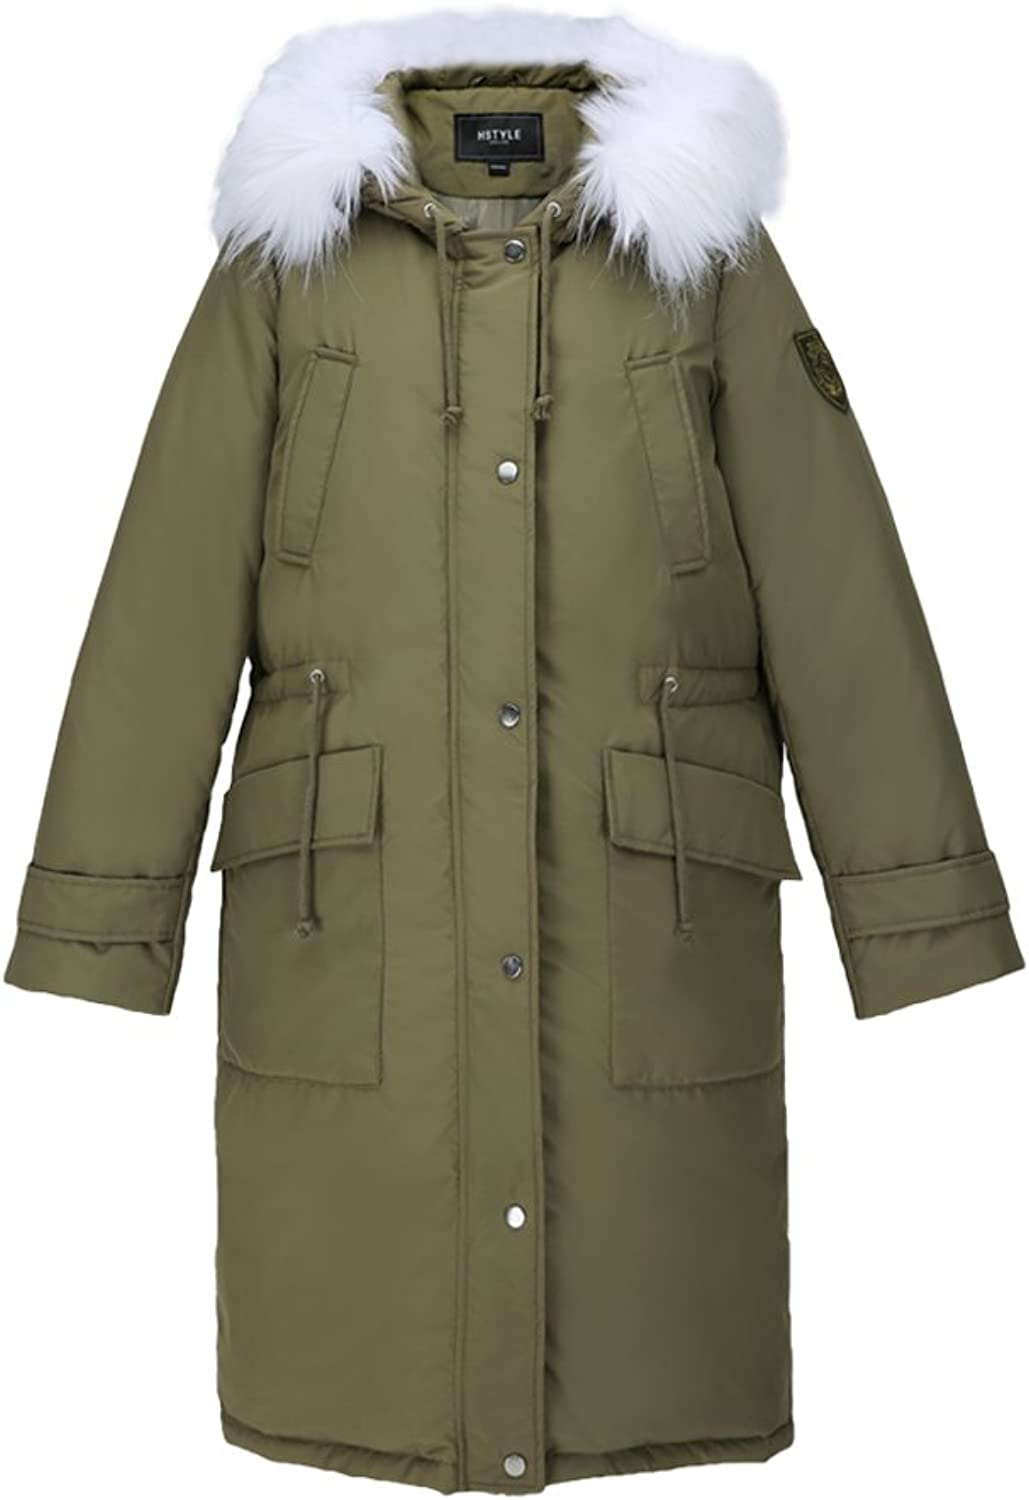 Leisure Green Hooded Zipper Coat Winter Warm Windproof Thick Coat Women Comfortable Straight Down Coat (color   Green, Size   S)